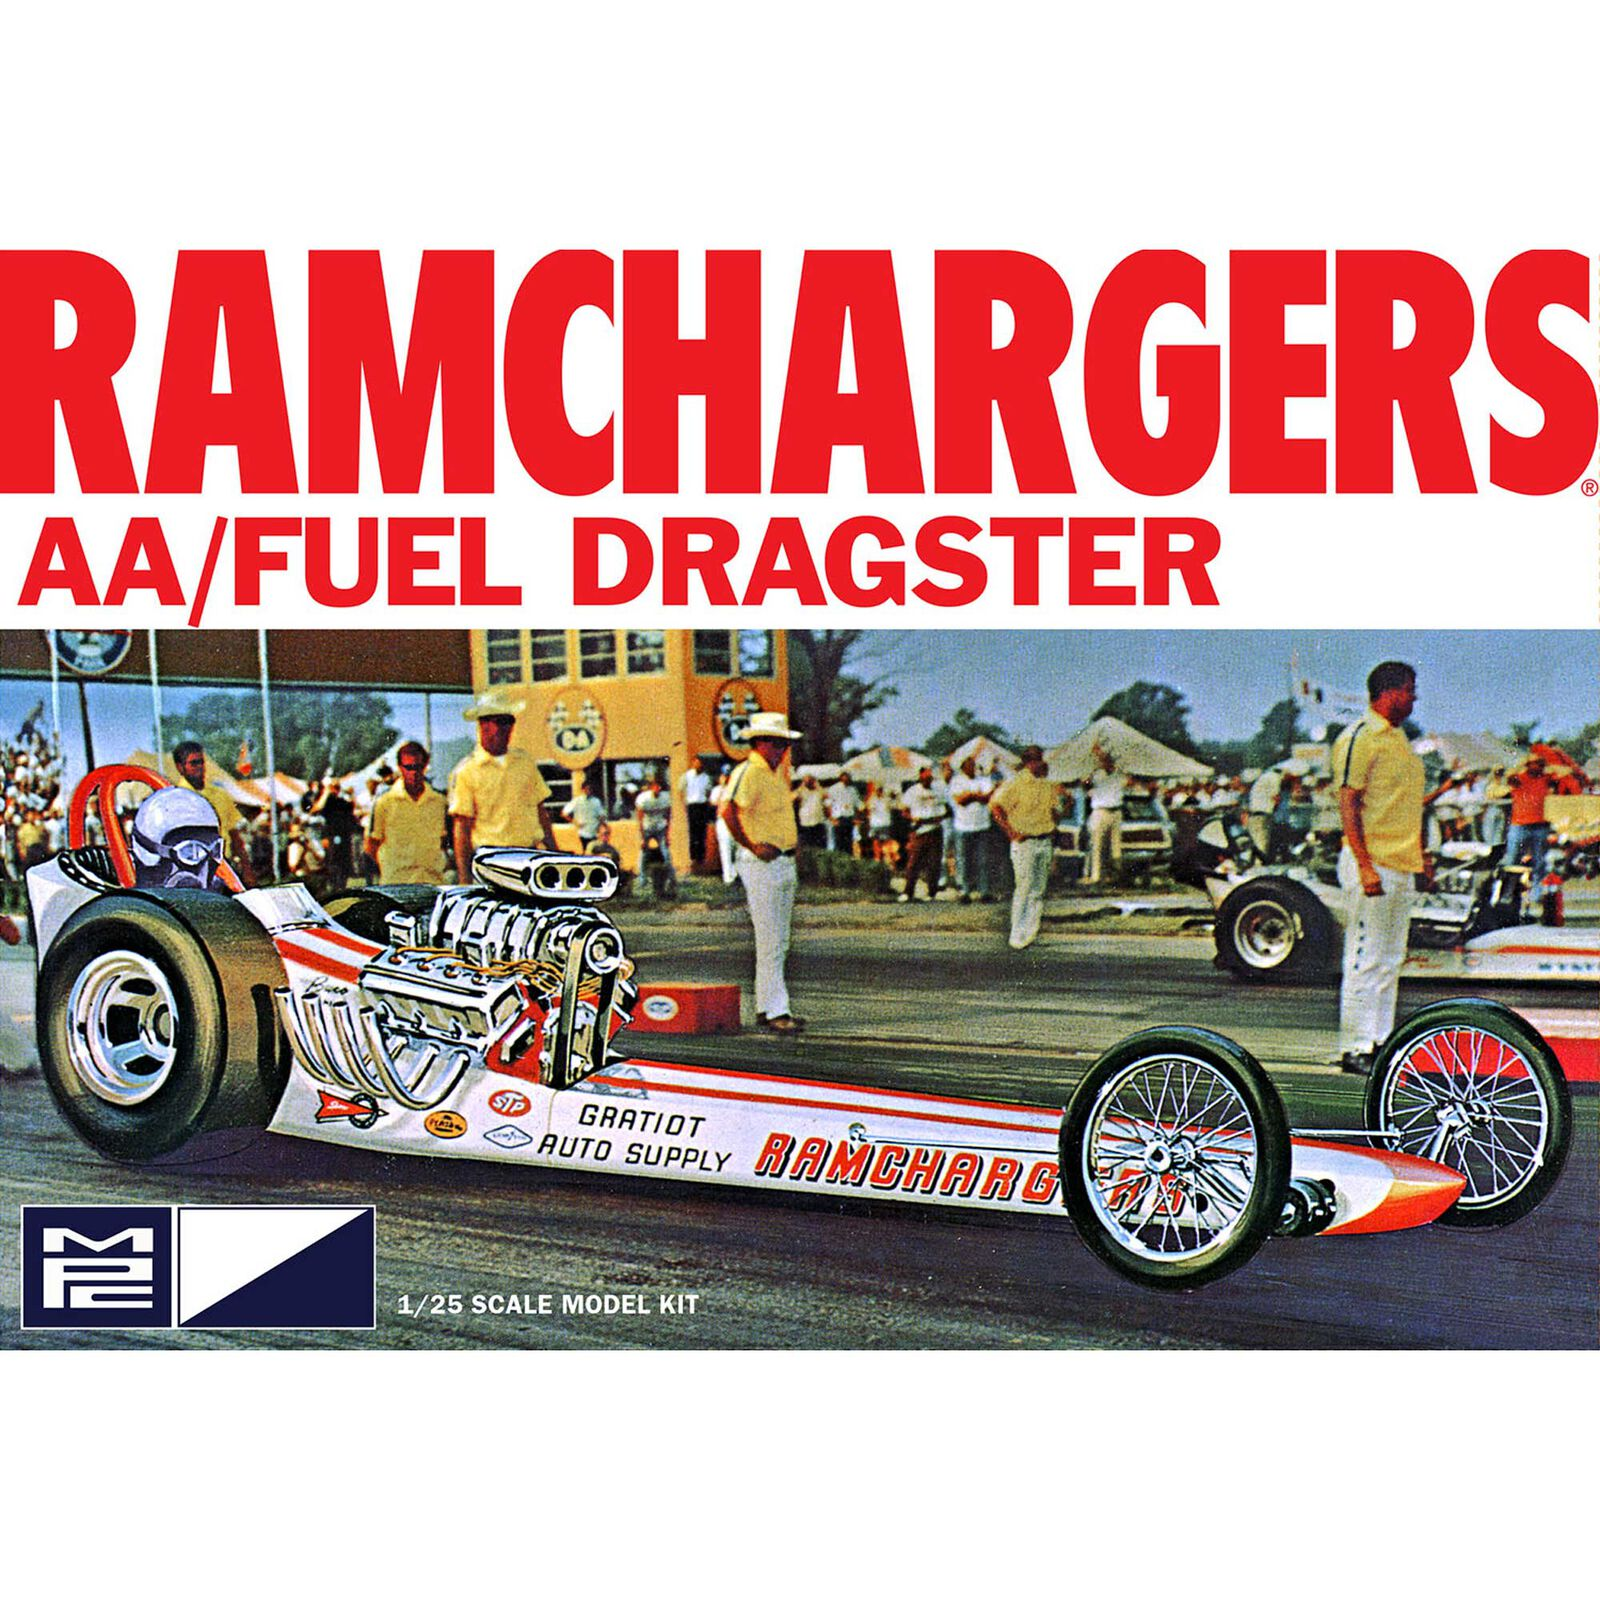 Ramchargers Front Engine Dragster